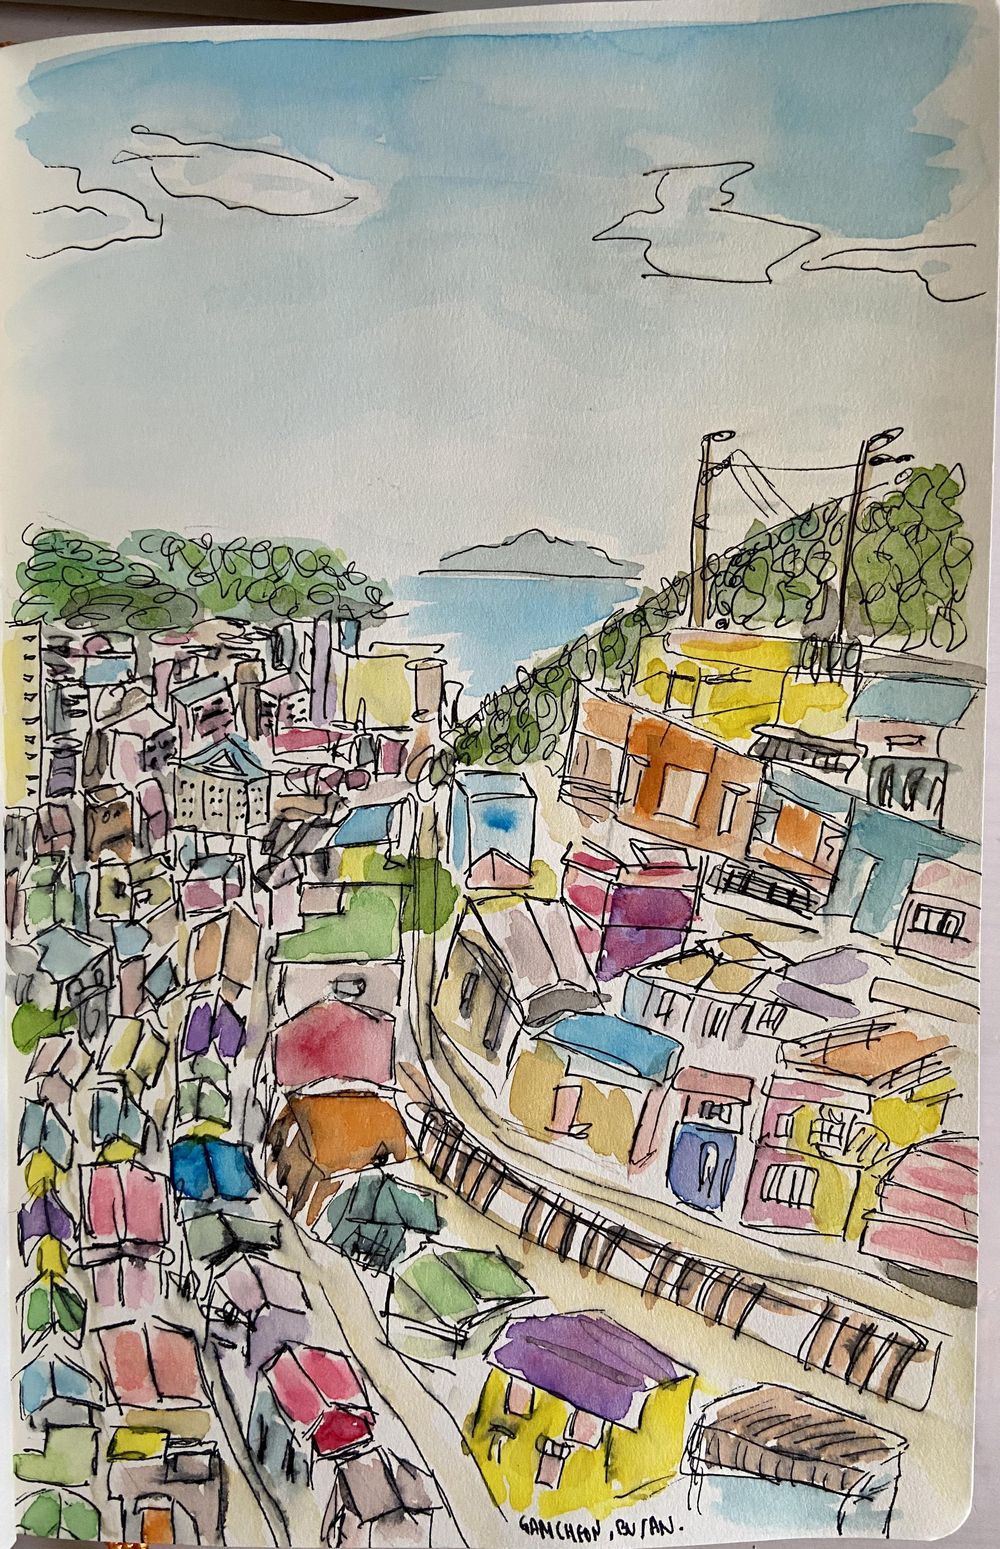 Gamcheon Culture Village, Busan - image 1 - student project